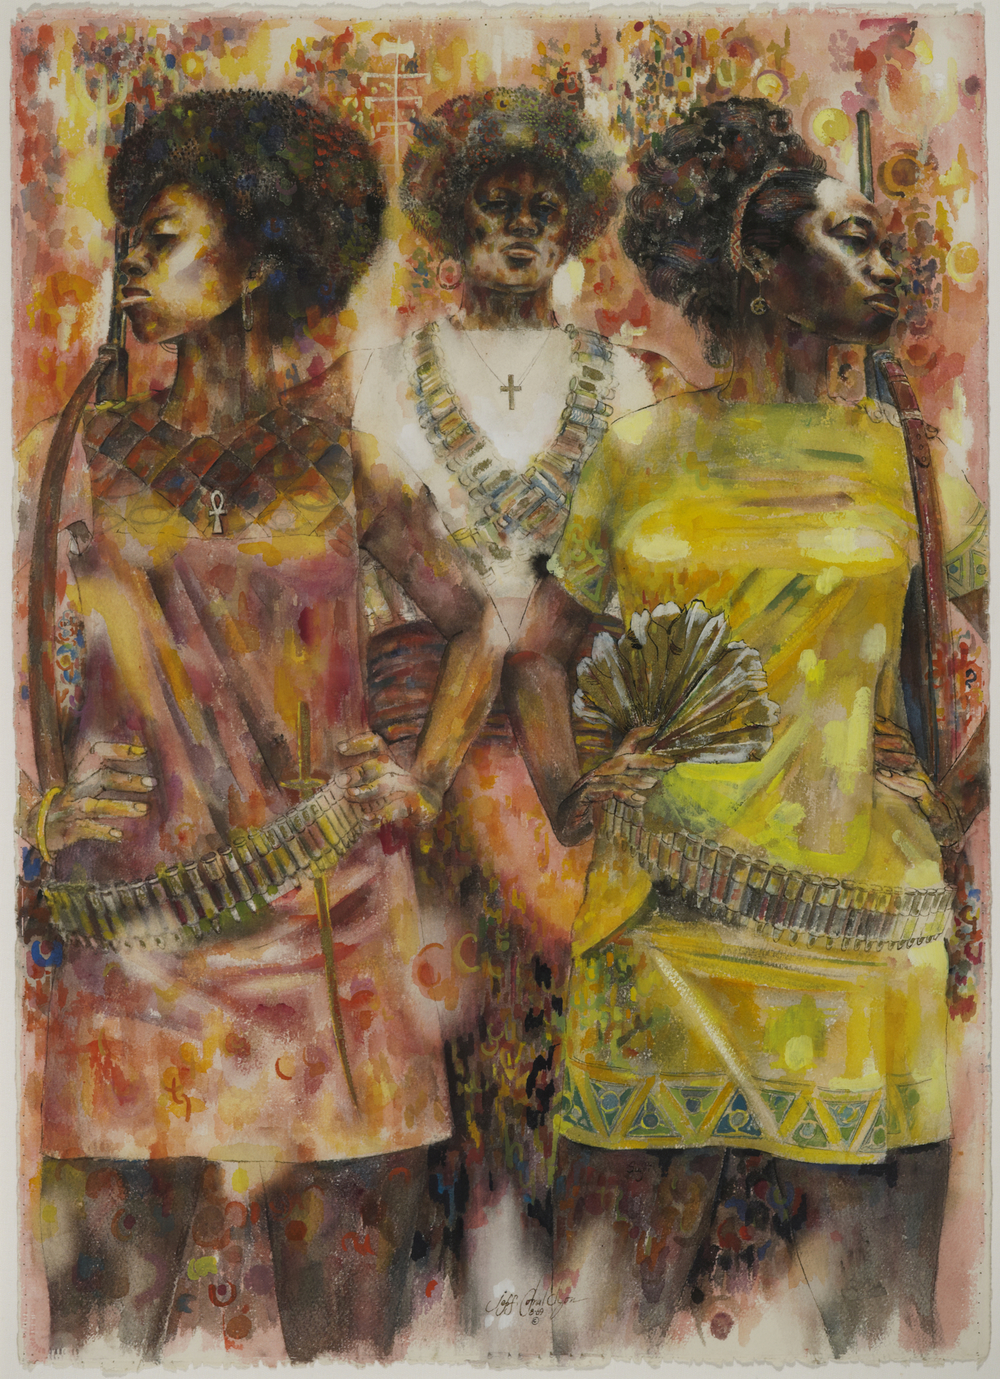 Jeff Donaldson (American, 1932-2004). Wives of Shango, 1969. Watercolor with mixed media on paper, Sheet: 30 x 22 in. (76.2 x 55.9 cm). Brooklyn Museum, Gift of R.M. Atwater, Anna Wolfrom Dove, Alice Fiebiger, Joseph Fiebiger, Belle Campbell Harriss, and Emma L. Hyde, by exchange; Designated Purchase Fund, Mary Smith Dorward Fund, Dick S. Ramsay Fund, and Carll H. de Silver Fund, 2012.80.13. © Jameela K. Donaldson    Witness: Art and Civil Rights in the Sixties is organized by the Brooklyn Museum